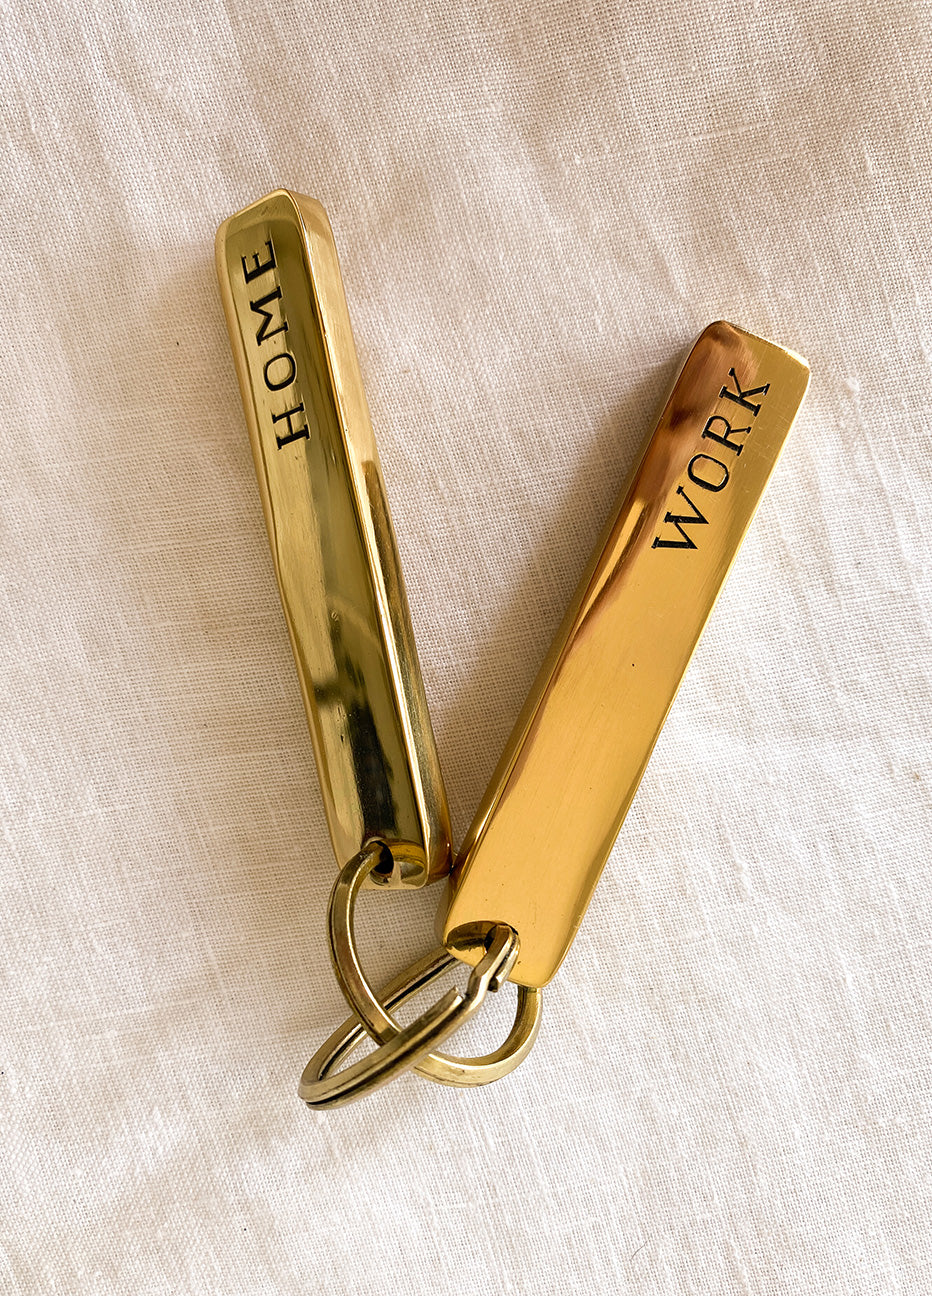 Brass Bar Keychains